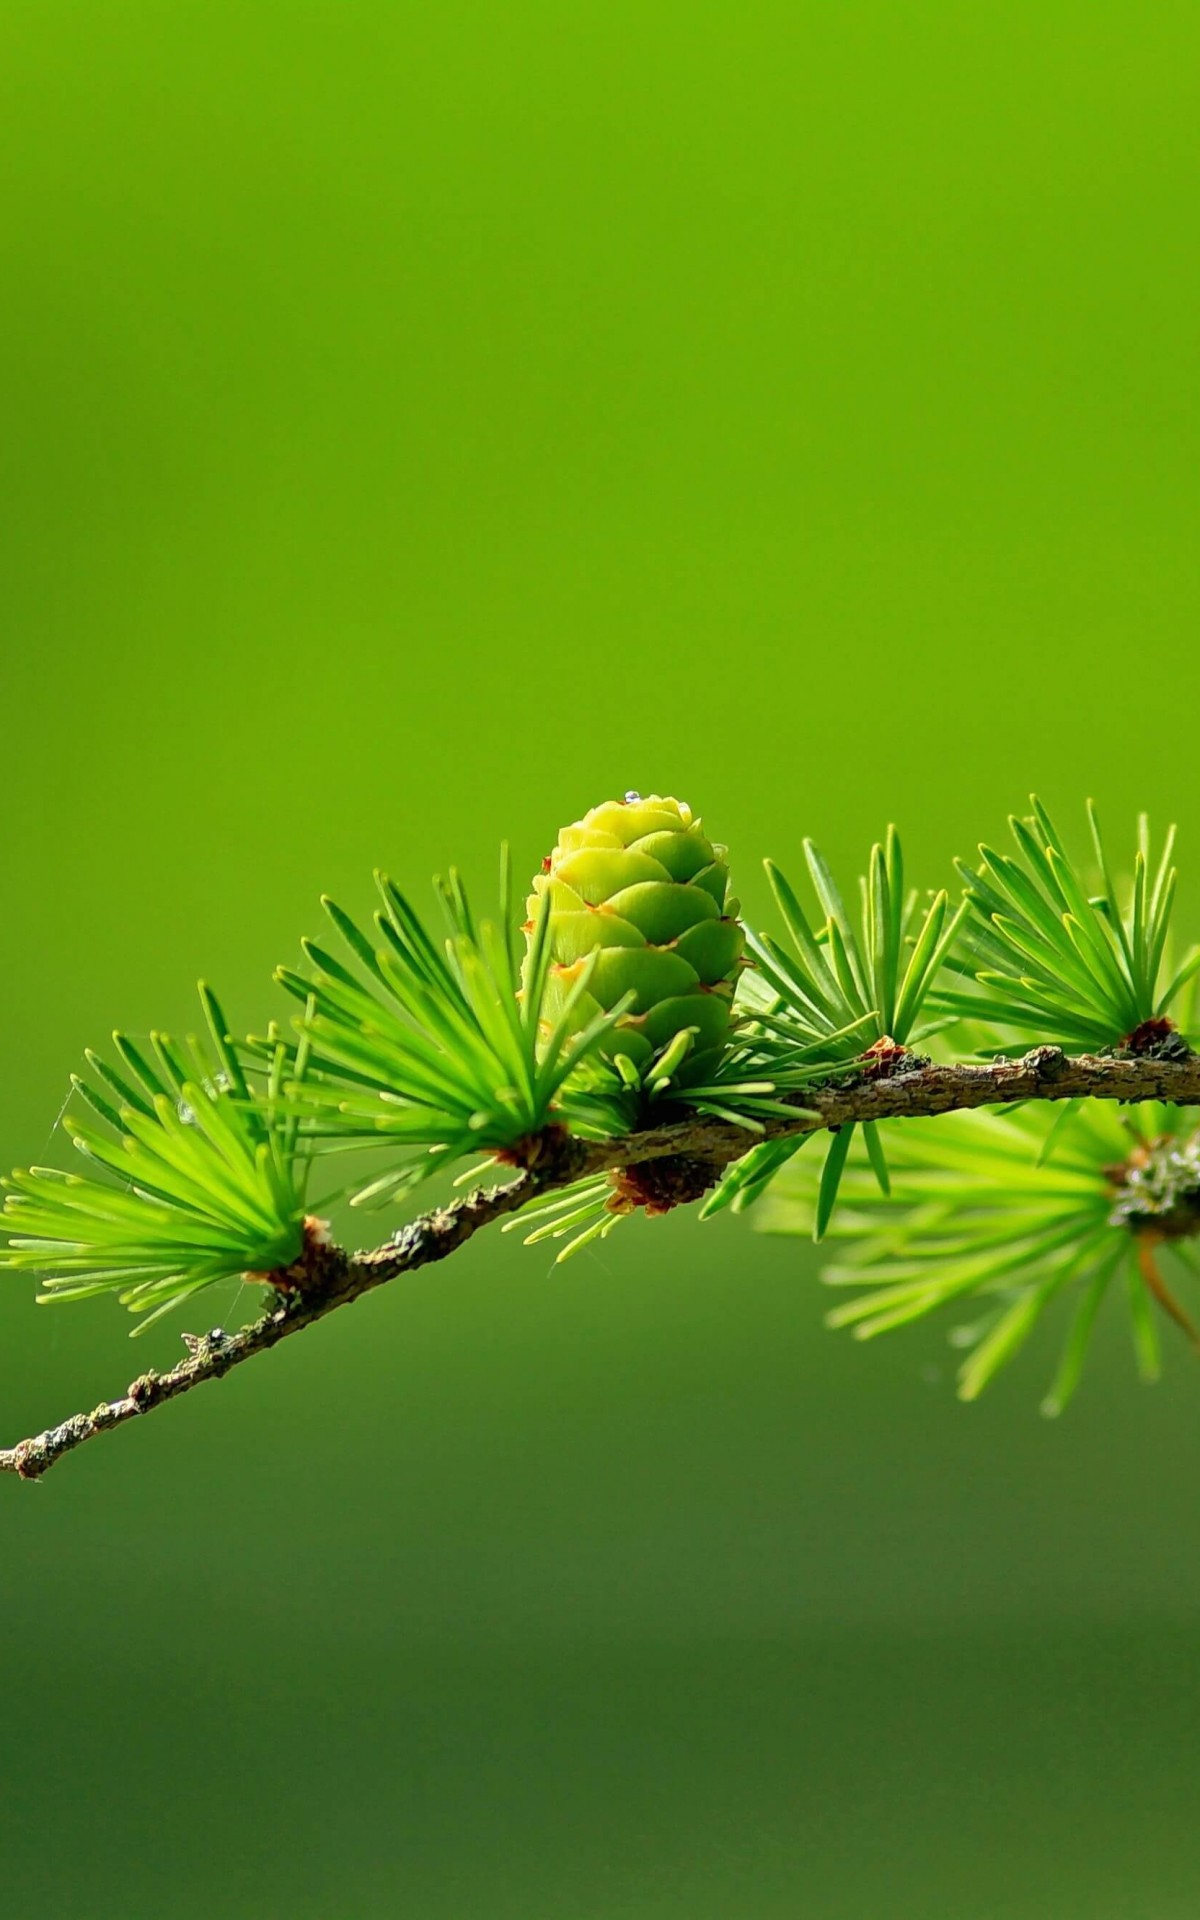 Branch of Pine Tree Wallpaper for Amazon Kindle Fire HDX